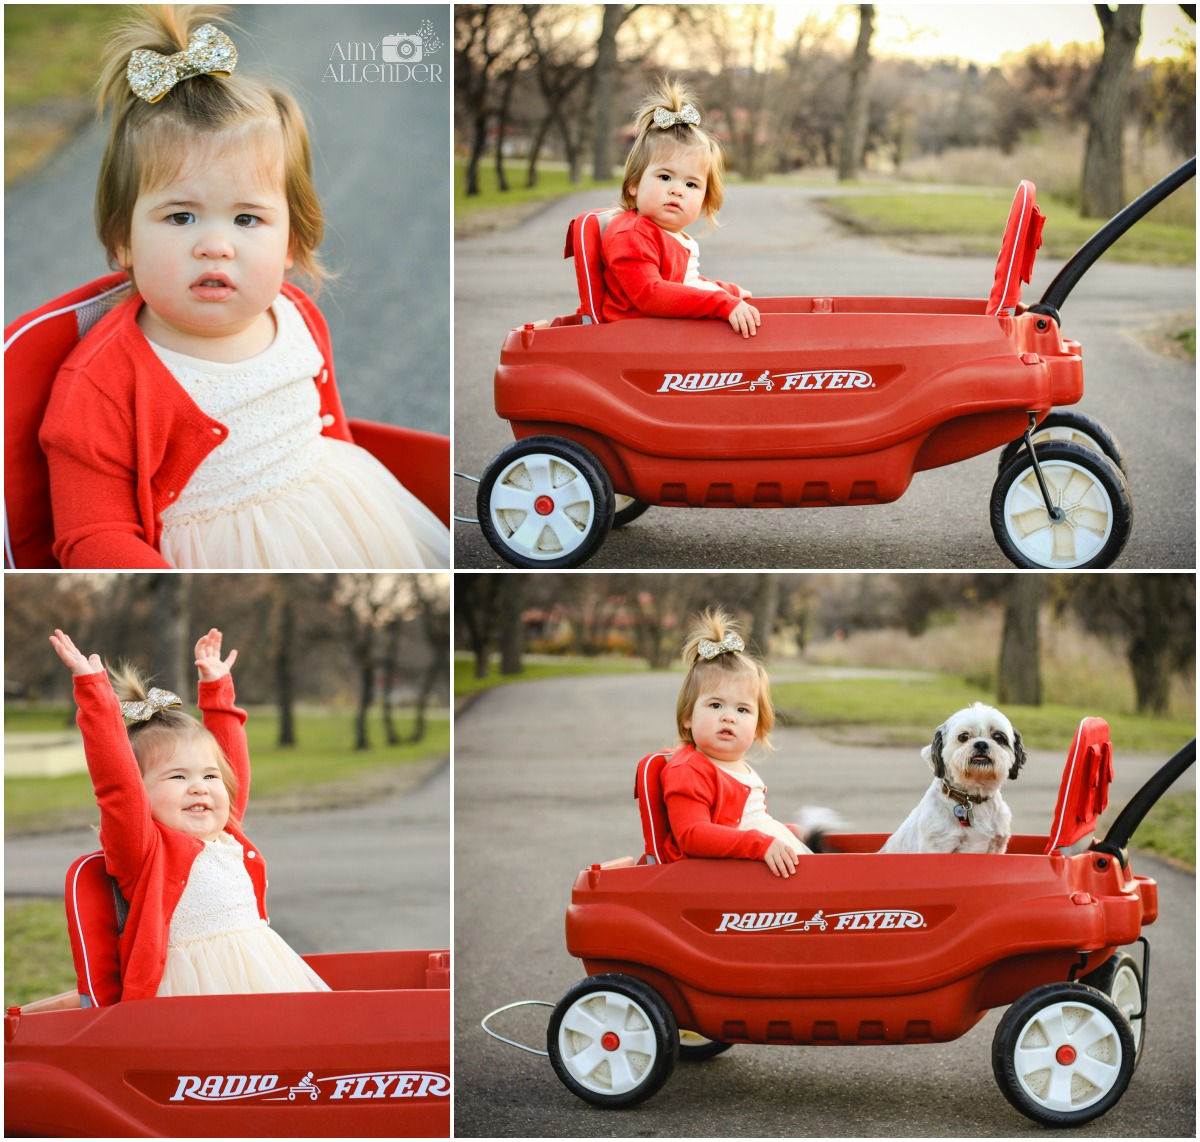 radio flyer baby portraits